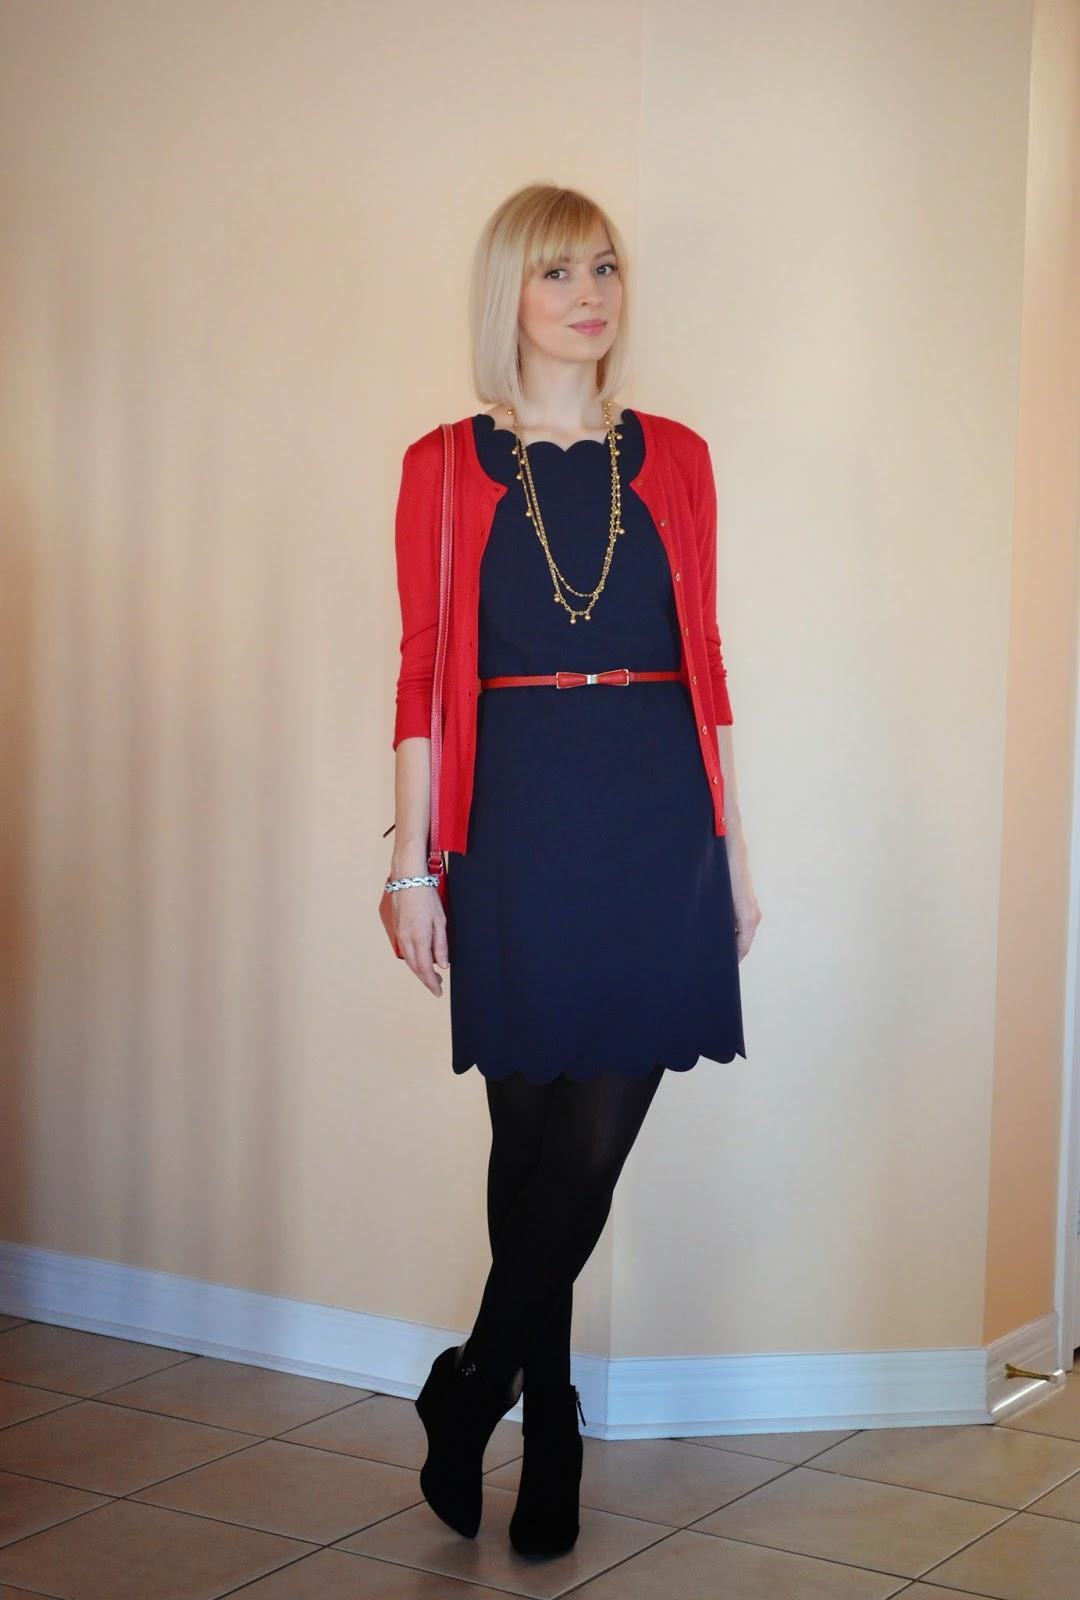 Style, OOTD, j. Crew, J. Crew style, J. Crew factory, scalloped dress, red and navy, preppy style, office dress, shift dress